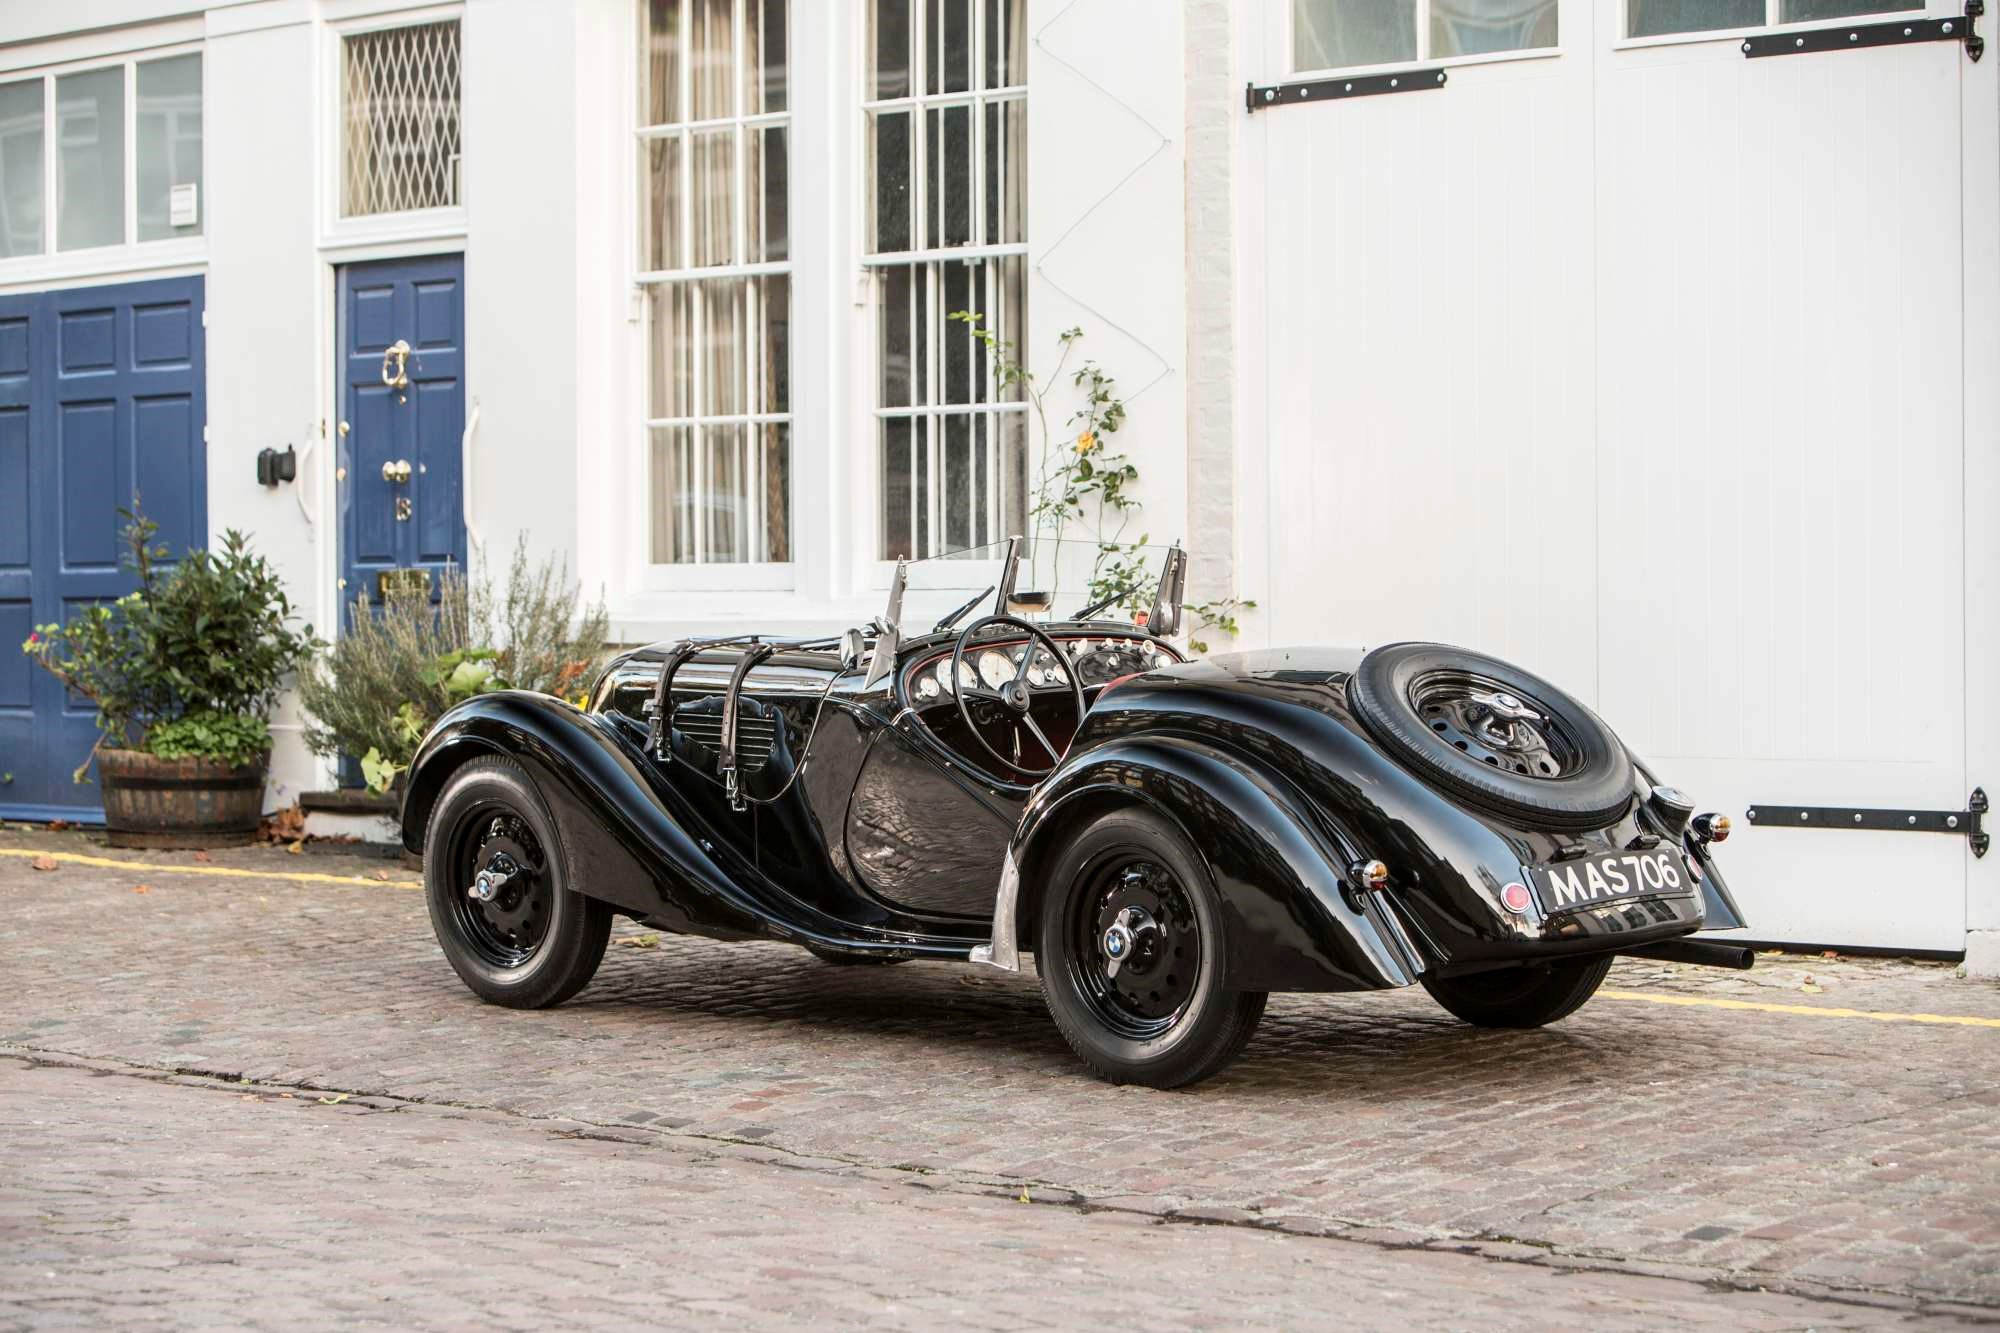 1937 BMW 328 | Previously Sold | FISKENS